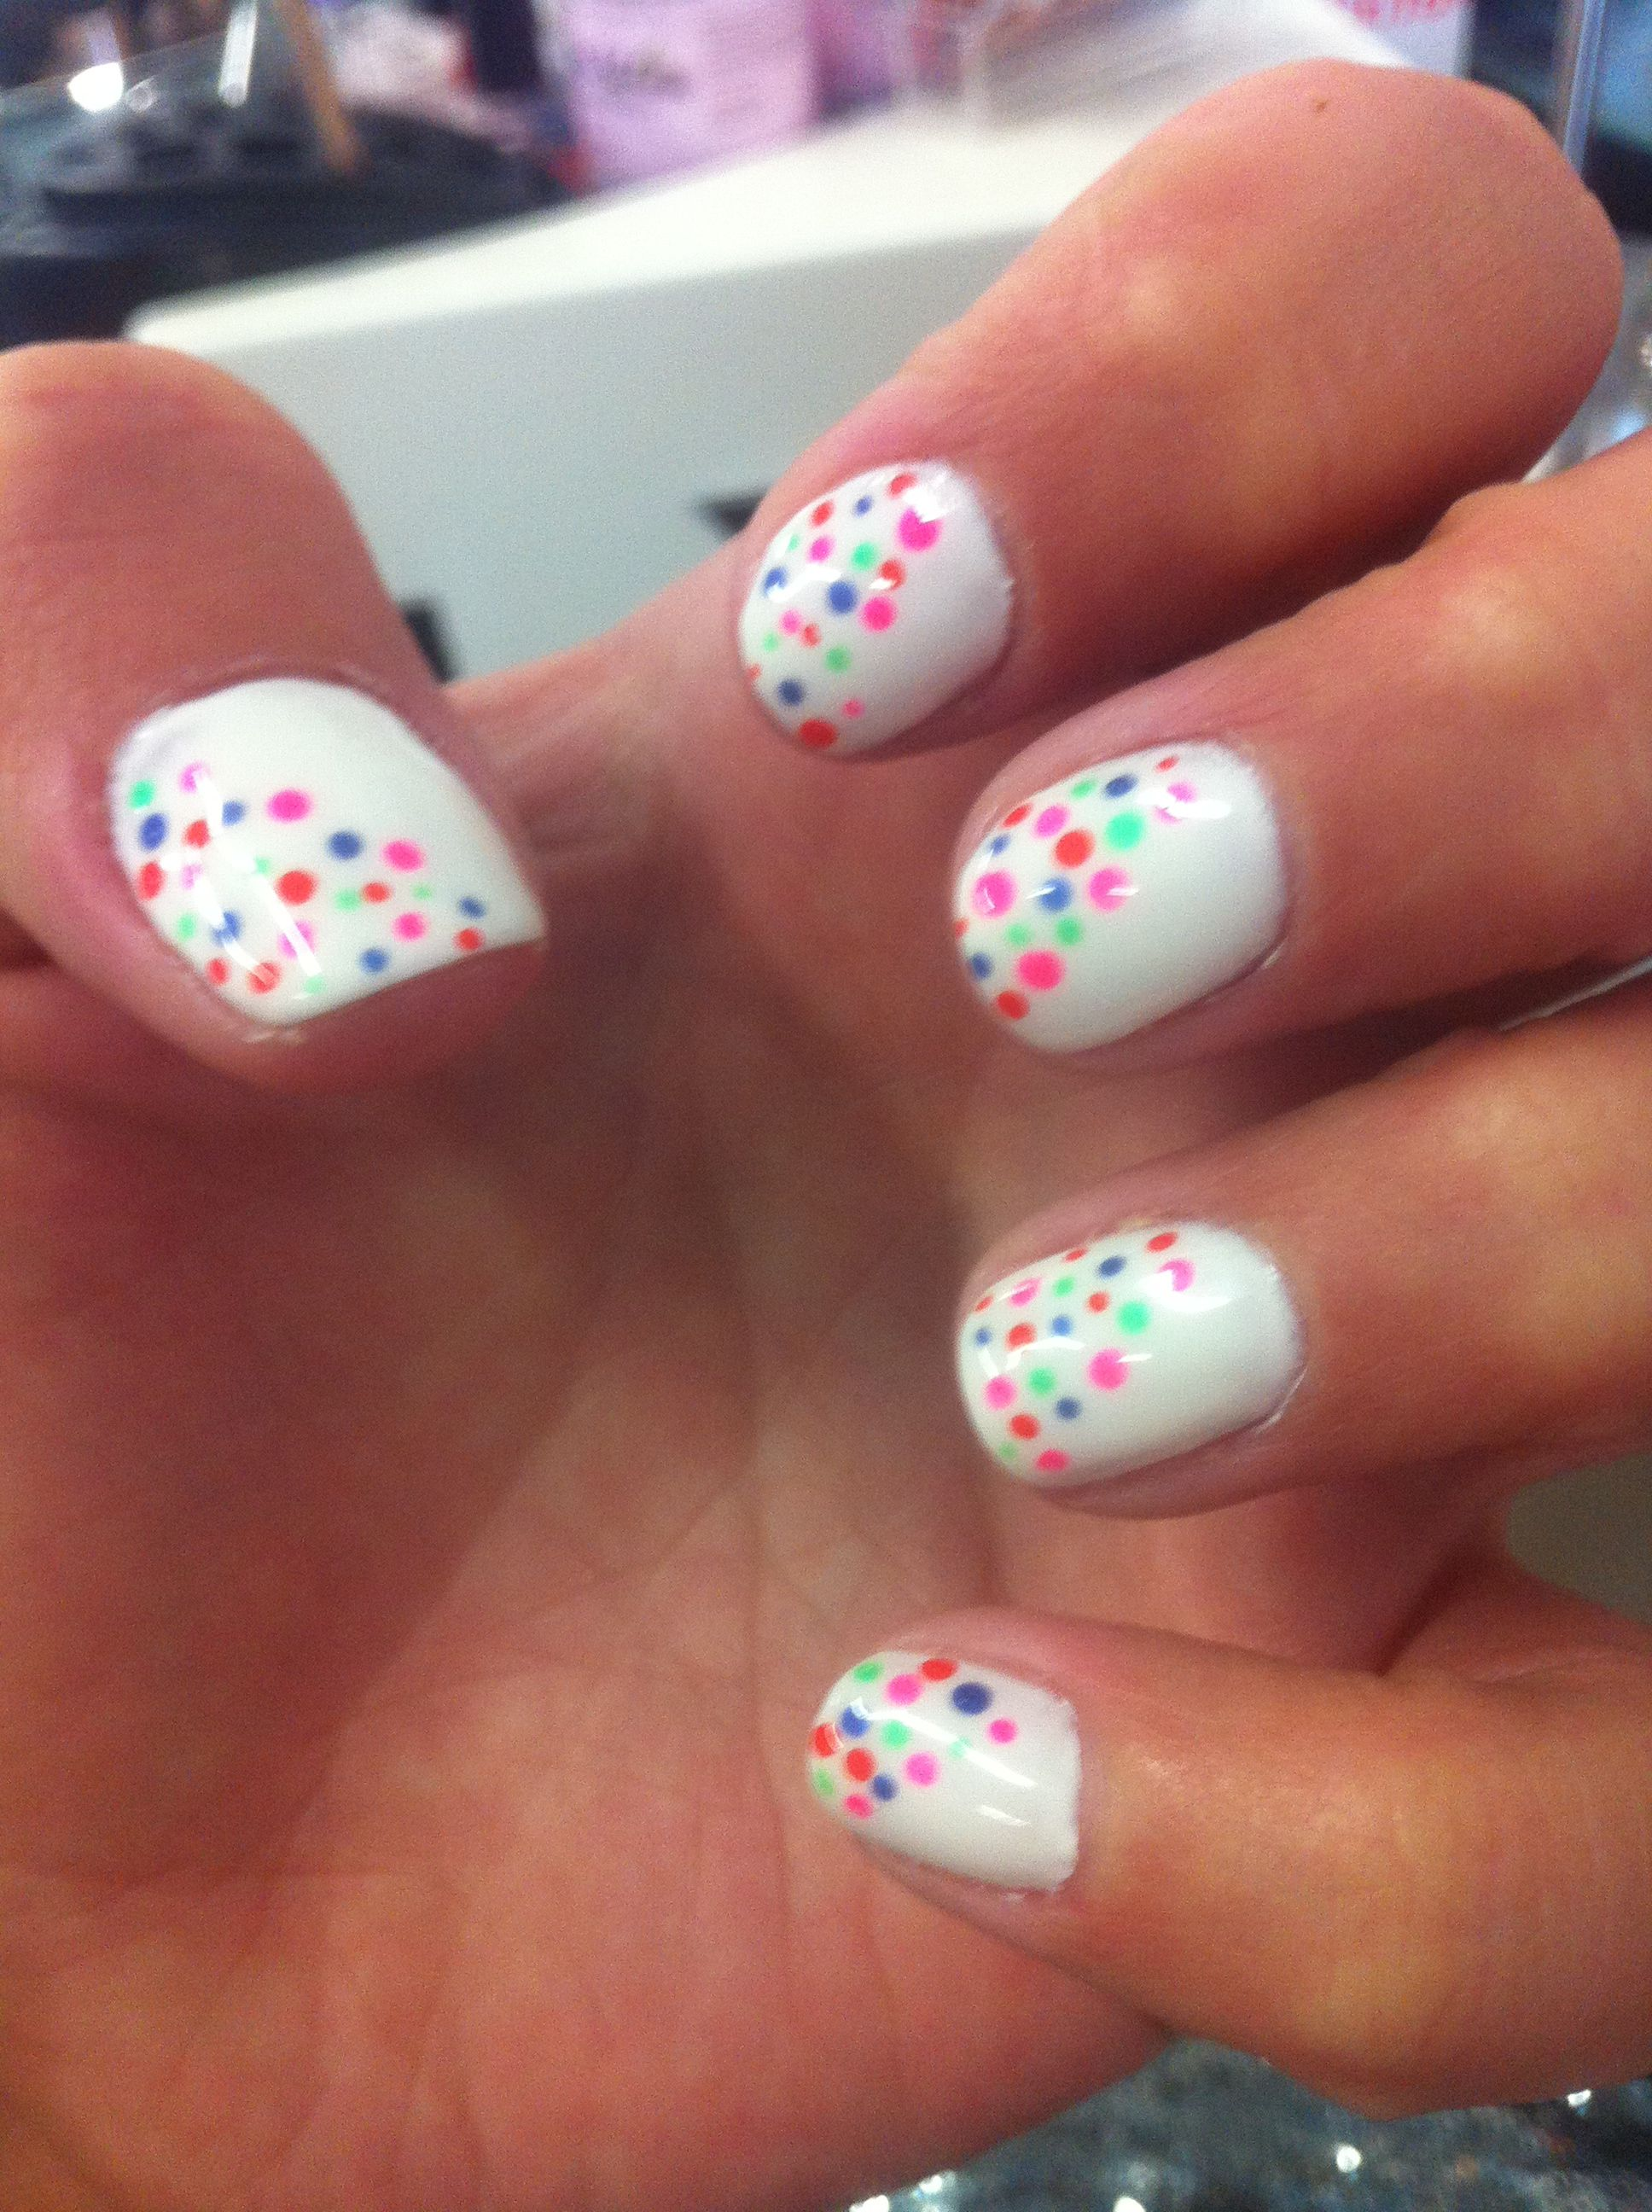 Awesome Spring Nail Design!